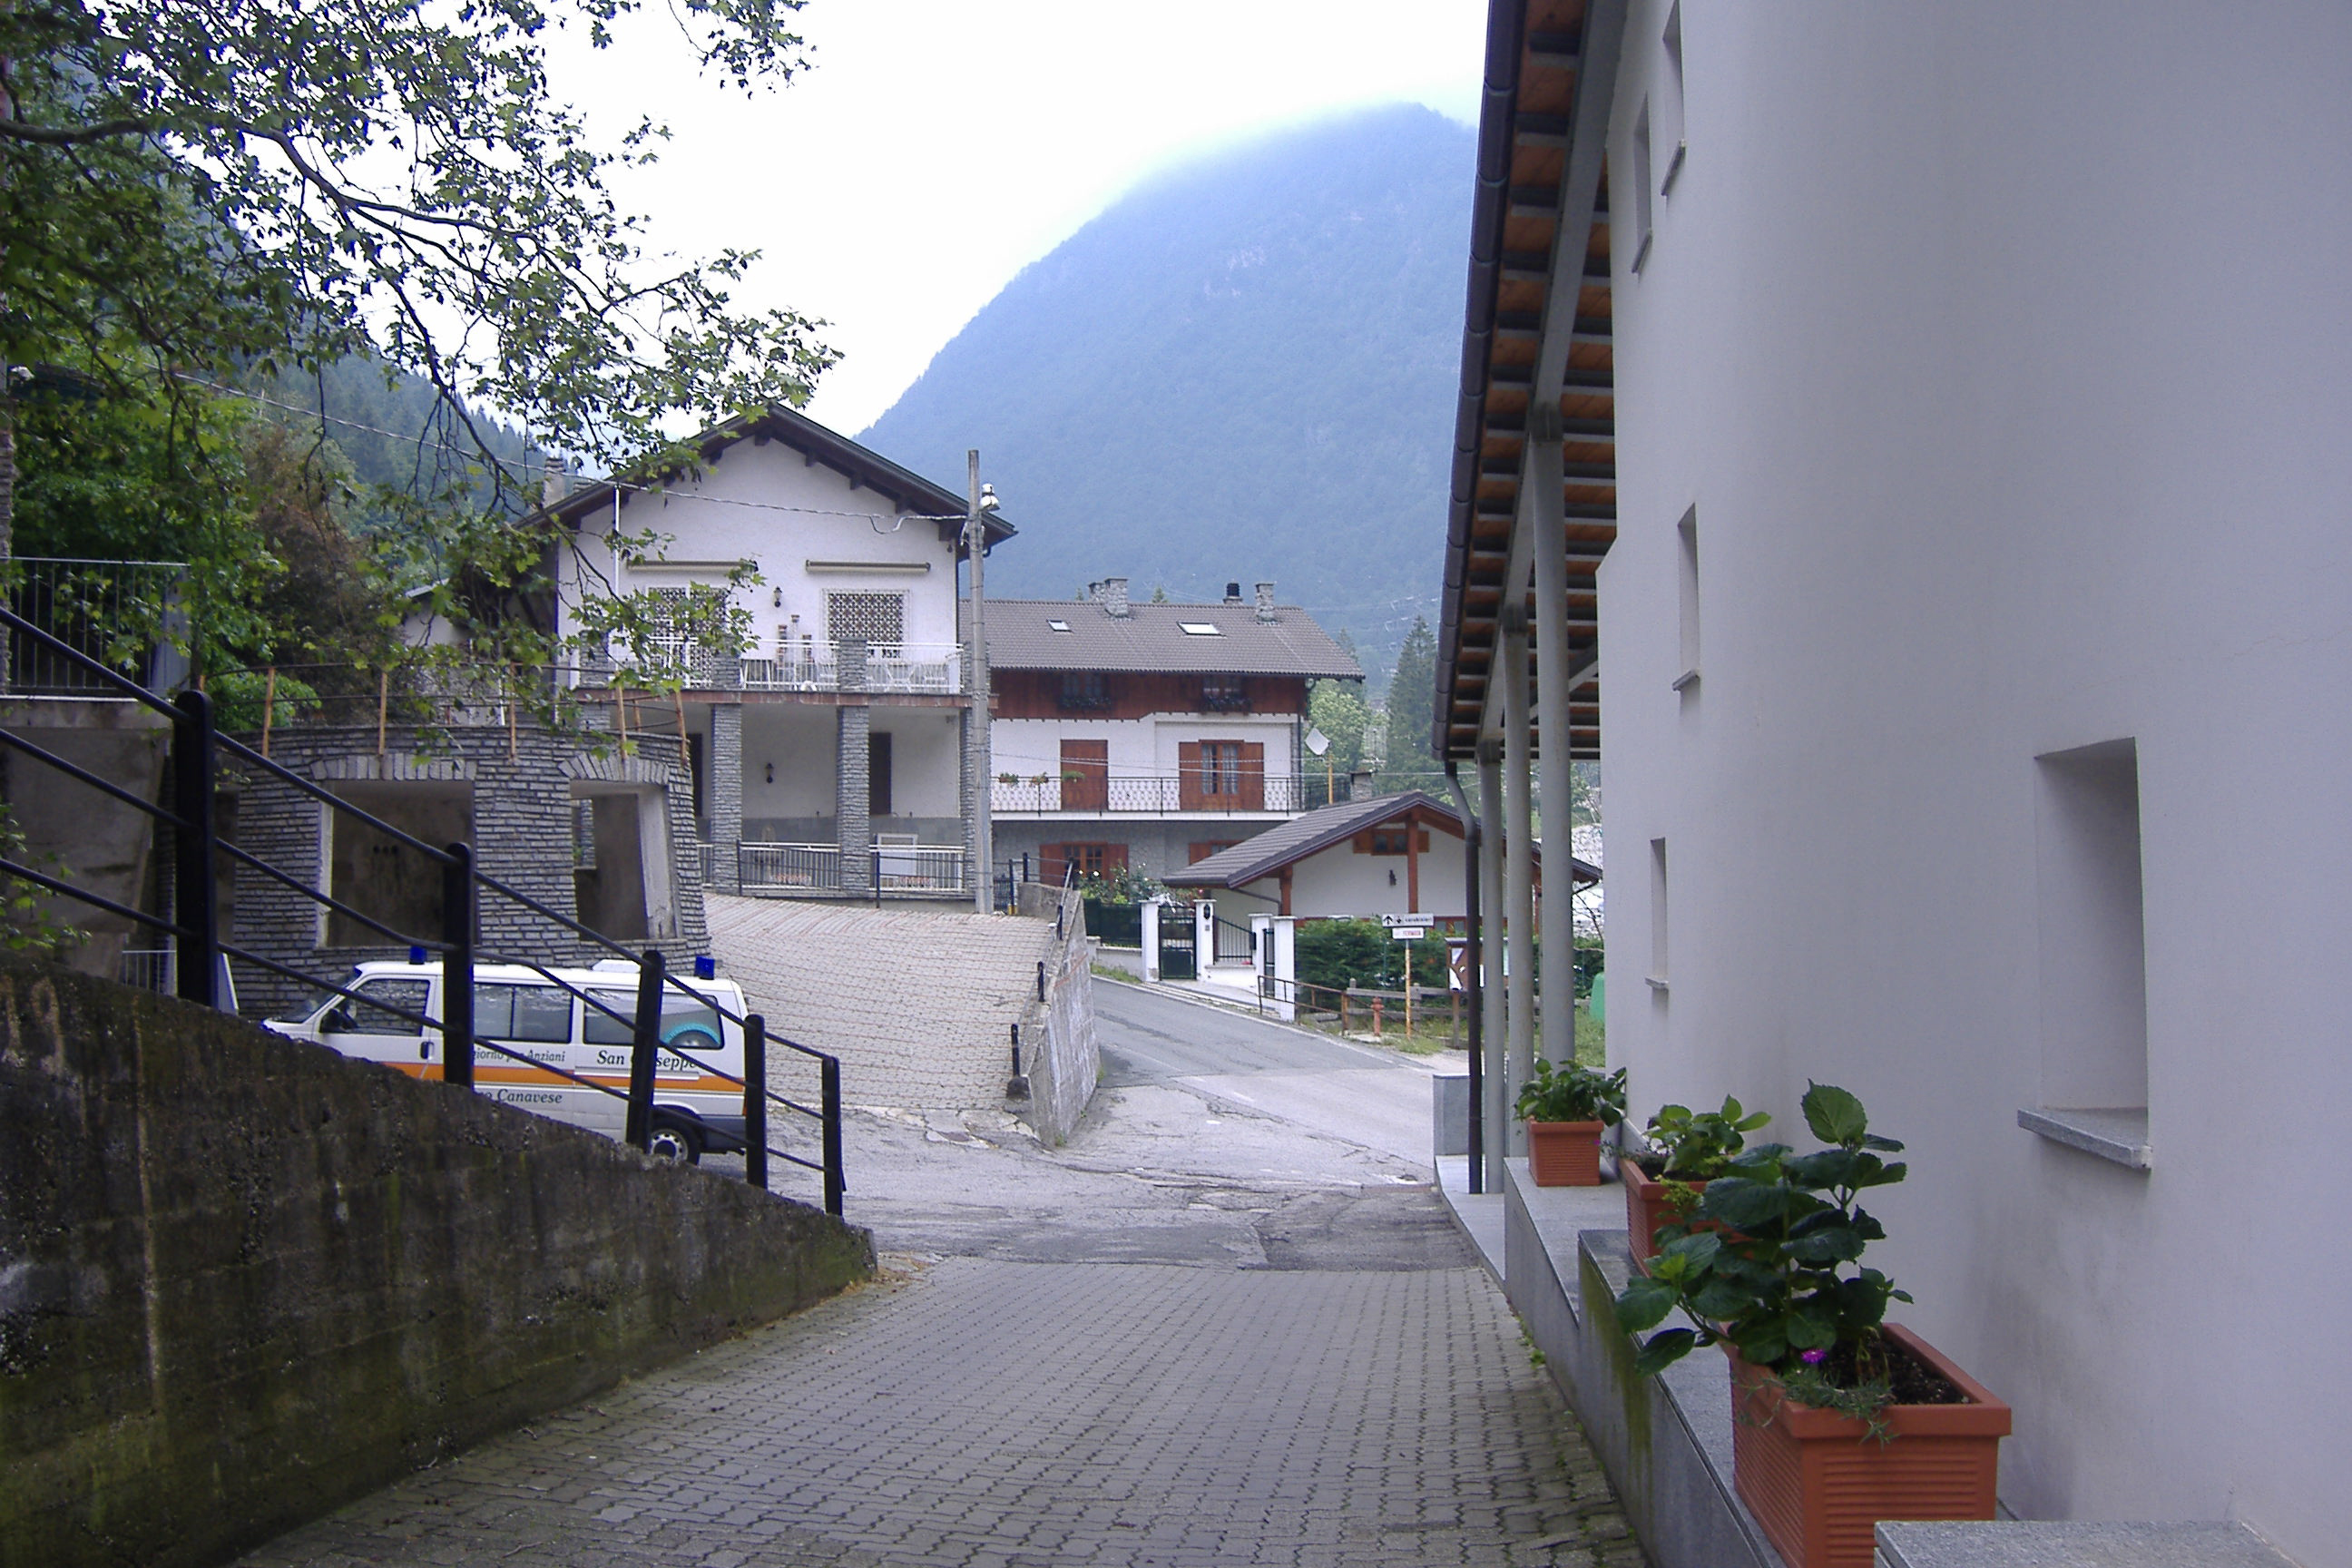 Ronco Canavese